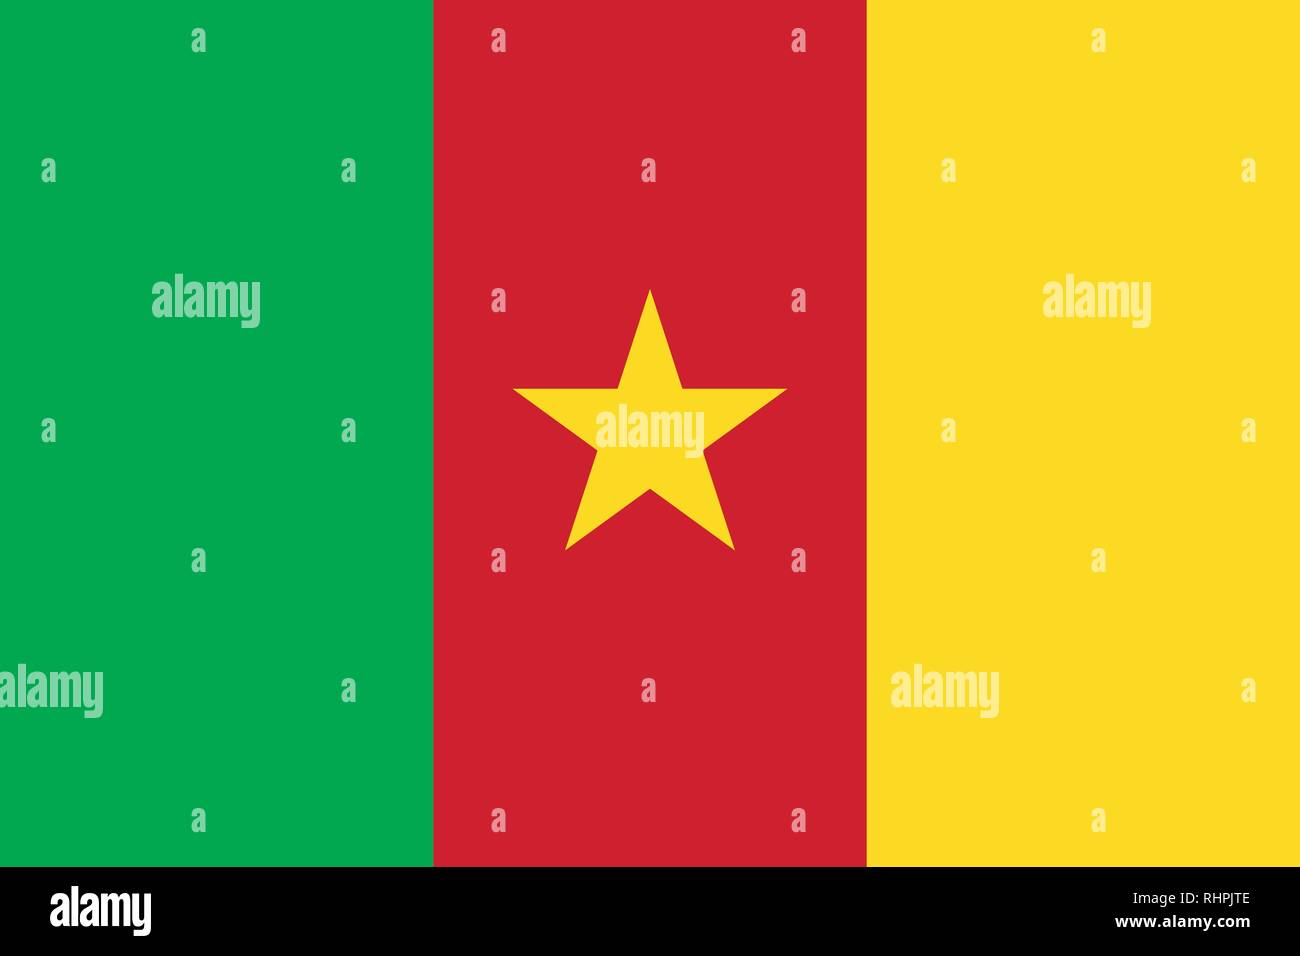 Vector Image of Cameroon Flag. Based on the official and exact Cameroon flag dimensions (3:2) & colors (115C, 354C and 186C) - Stock Vector